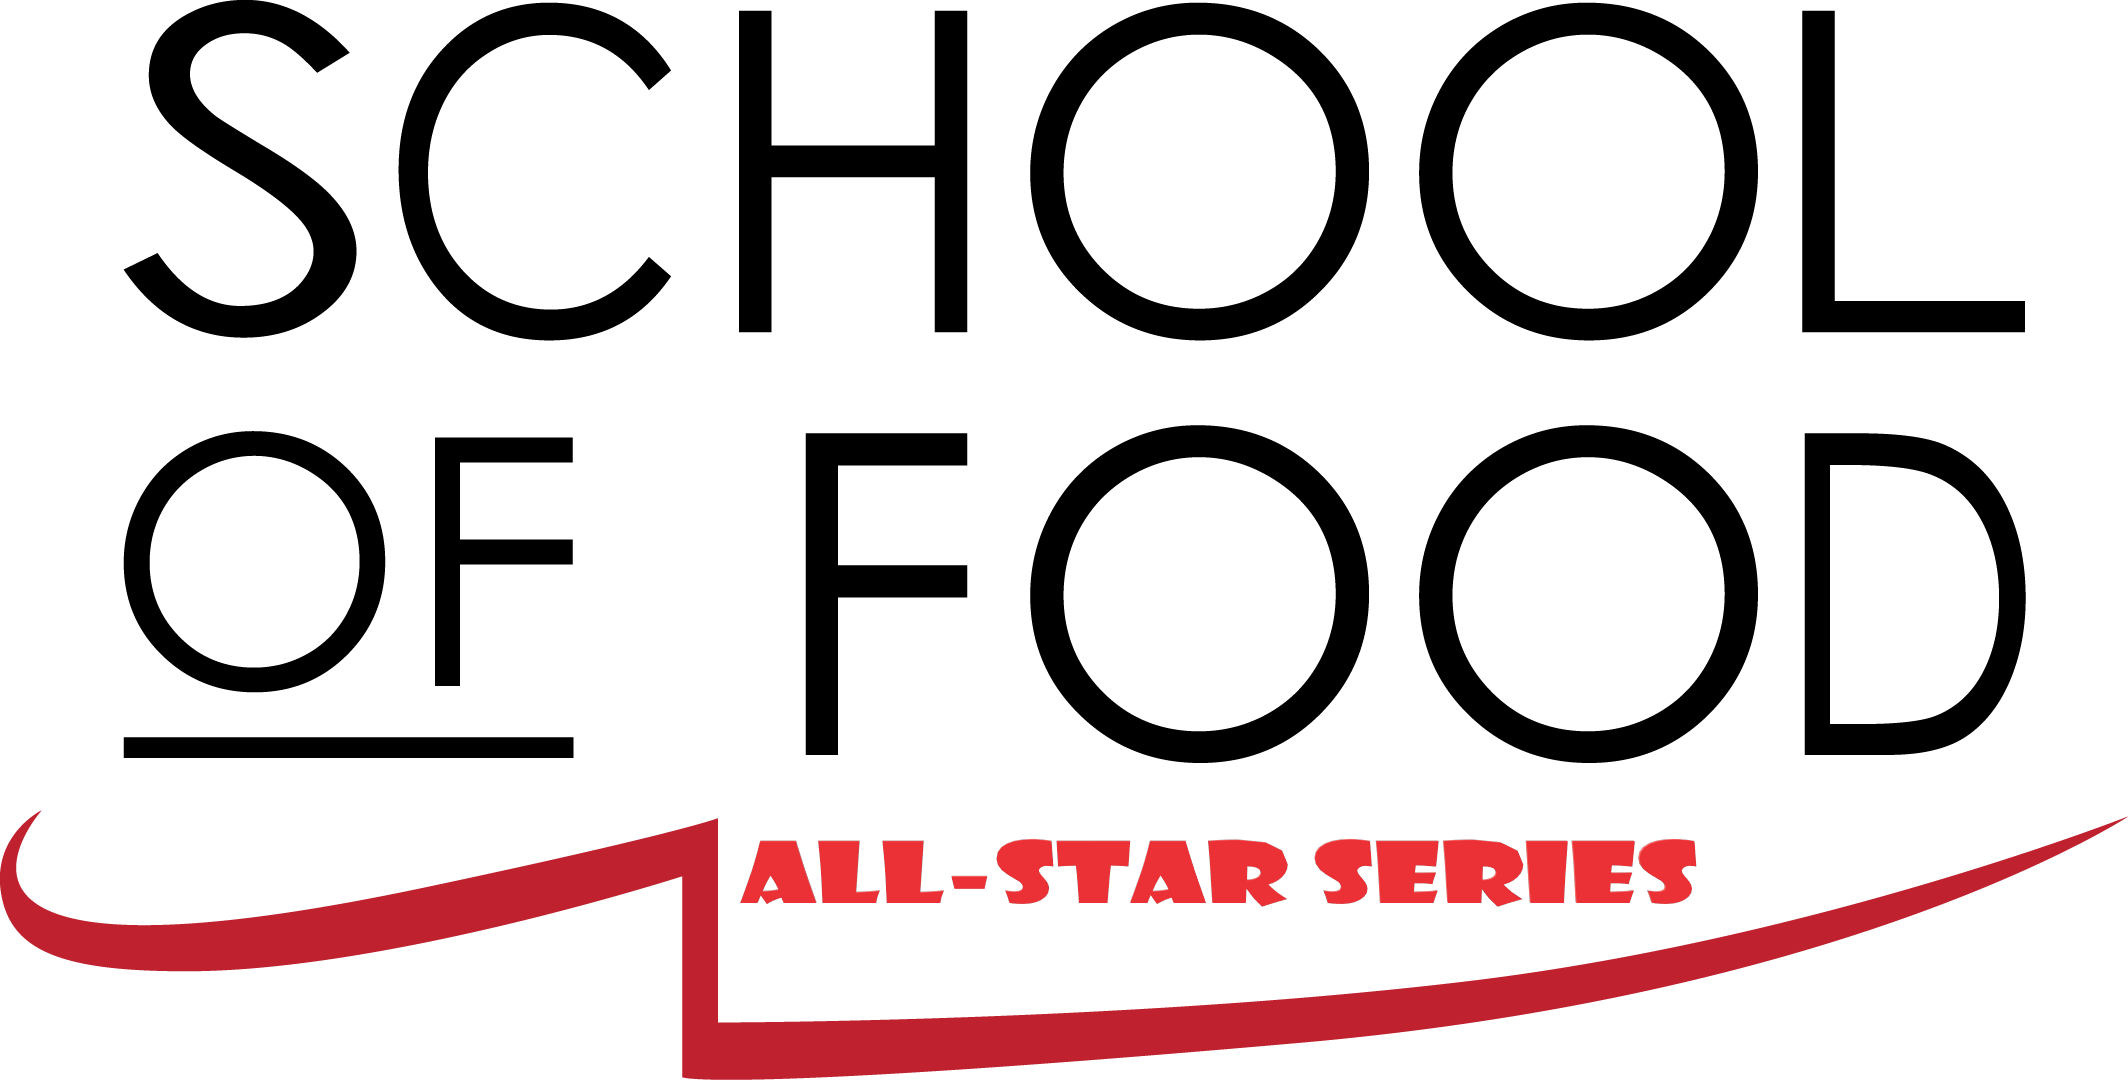 All Star Series